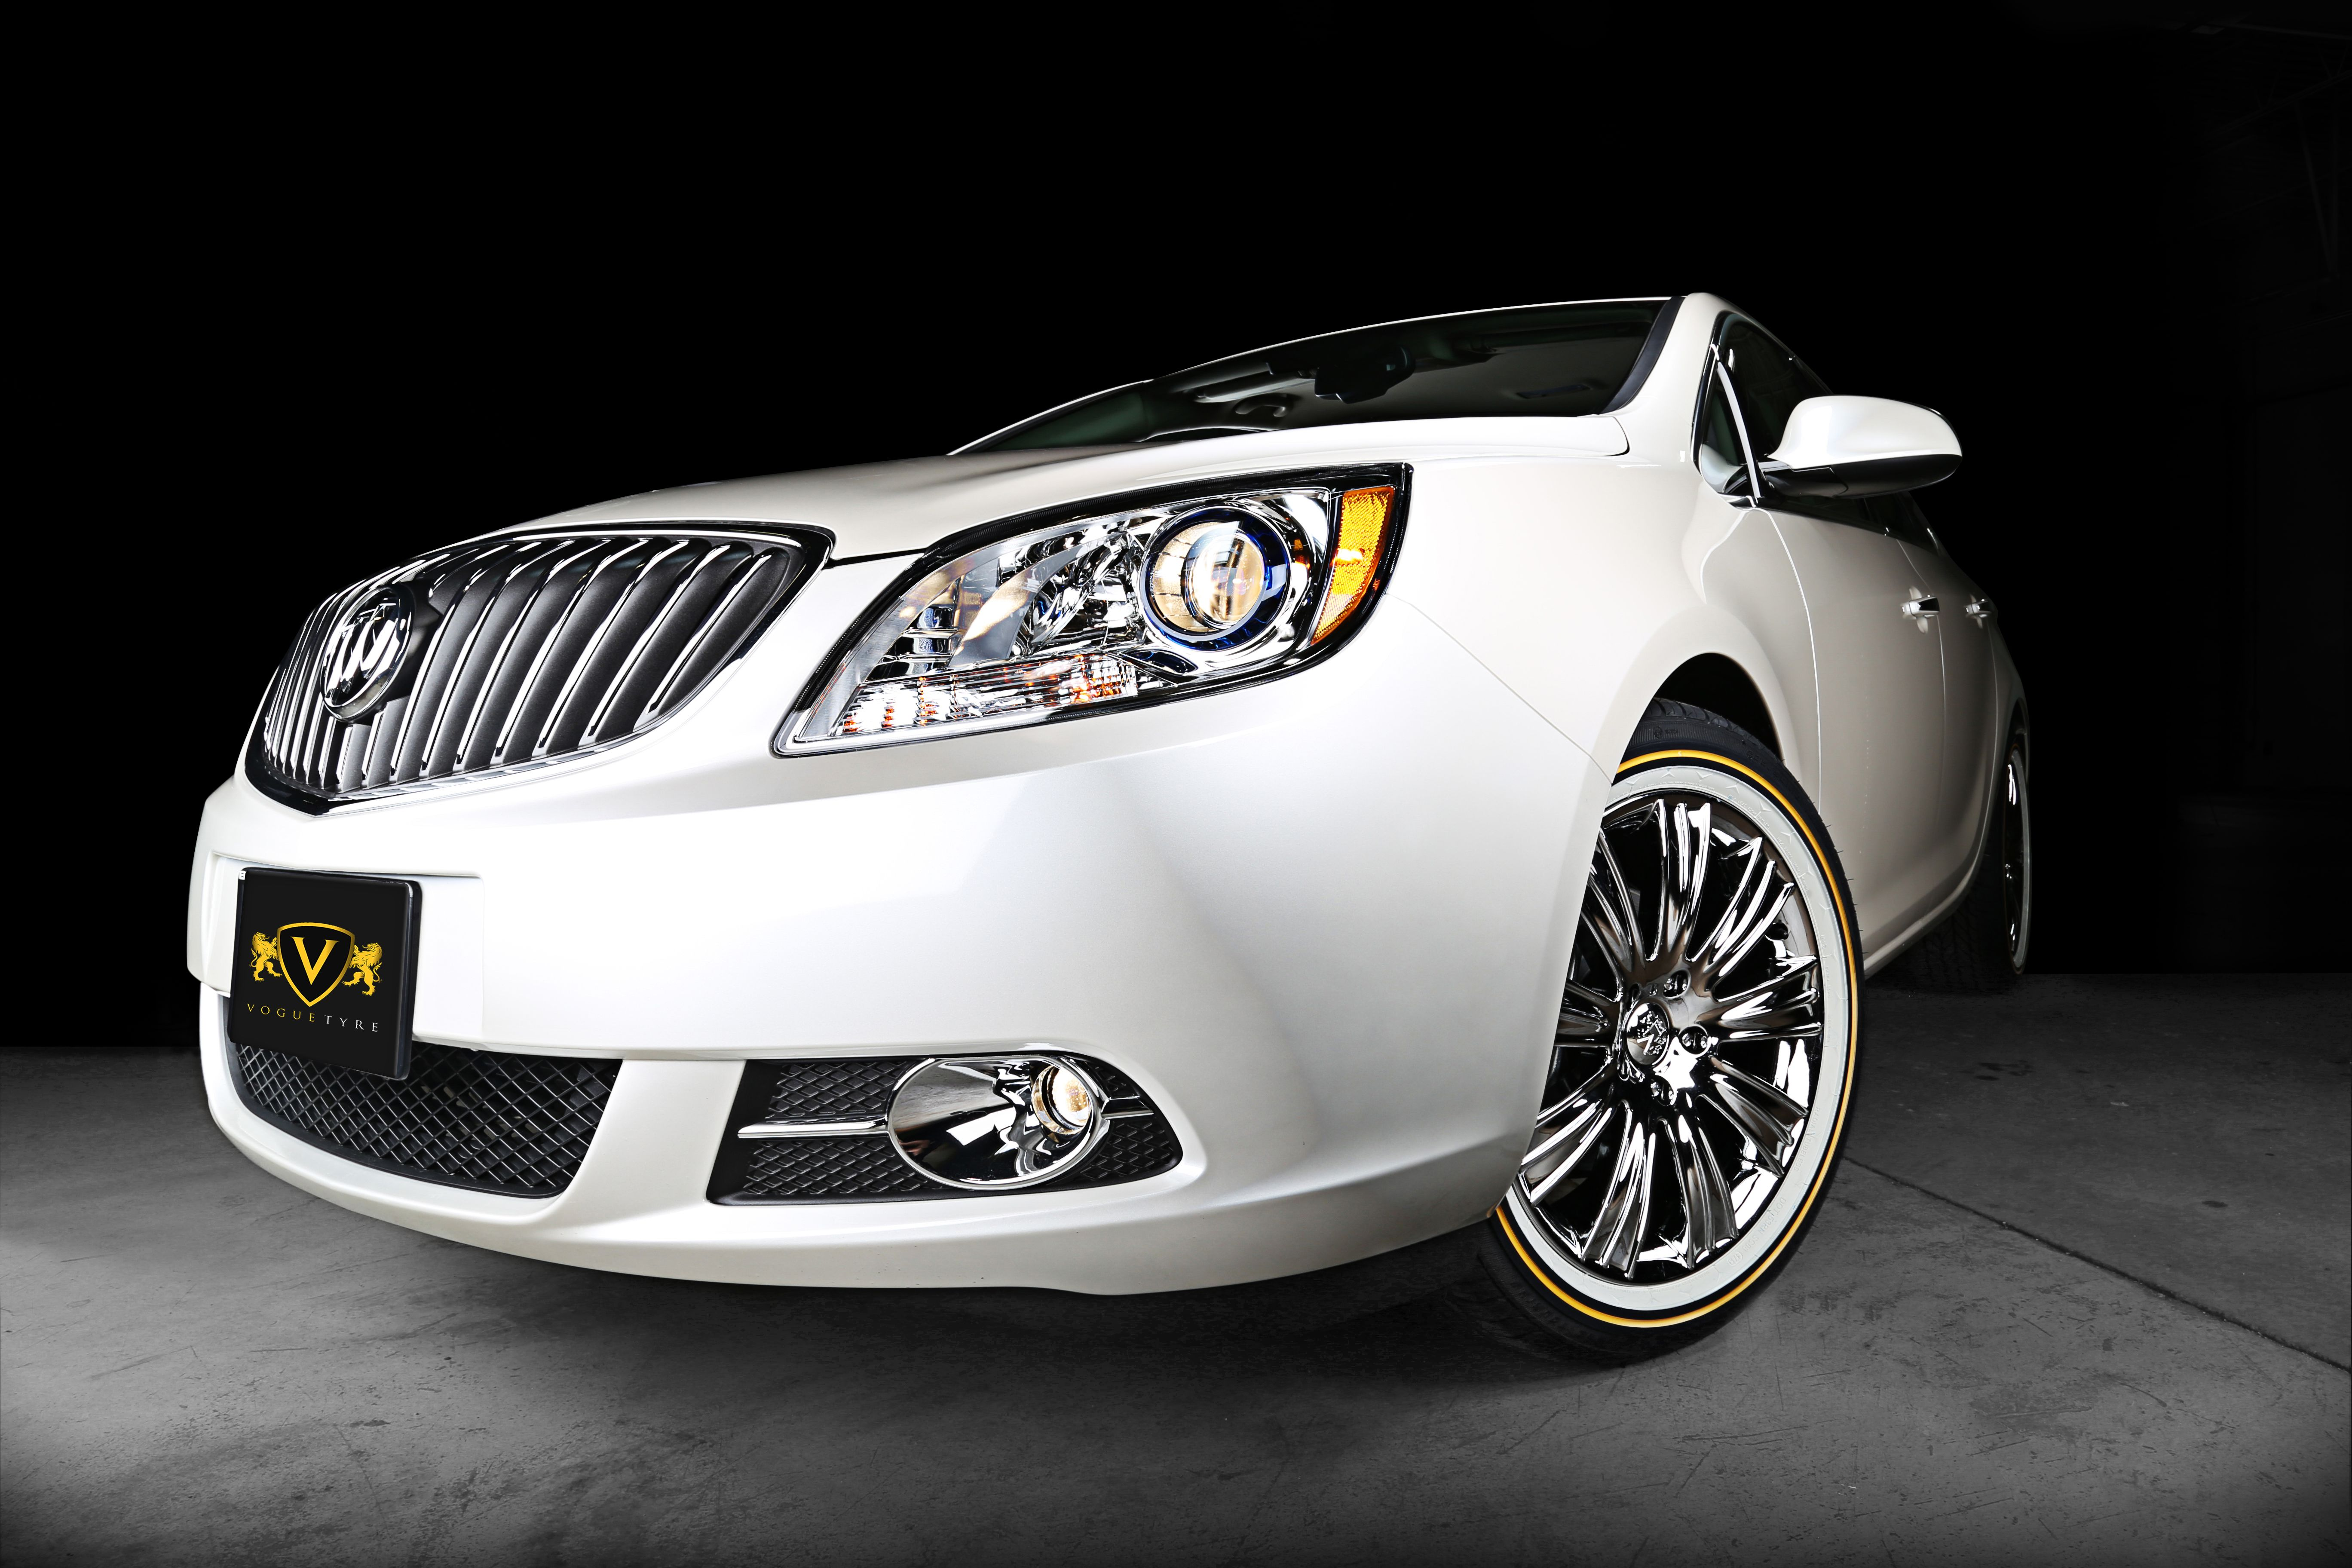 Pin By Vogue Tyre Rubber Co On Buick Buick Verano Buick Vogue